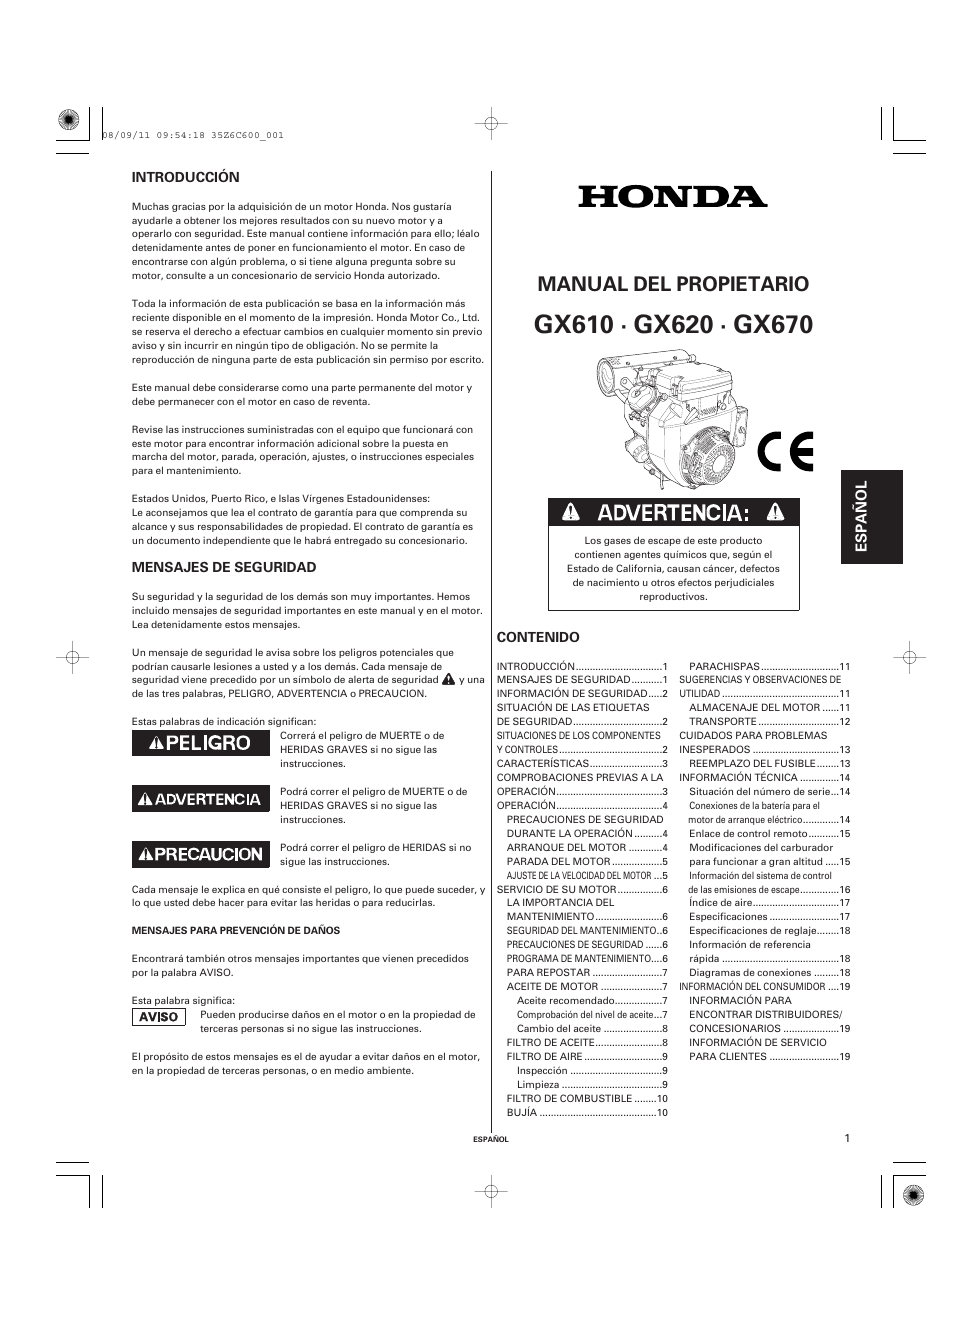 honda gx620 engine manual